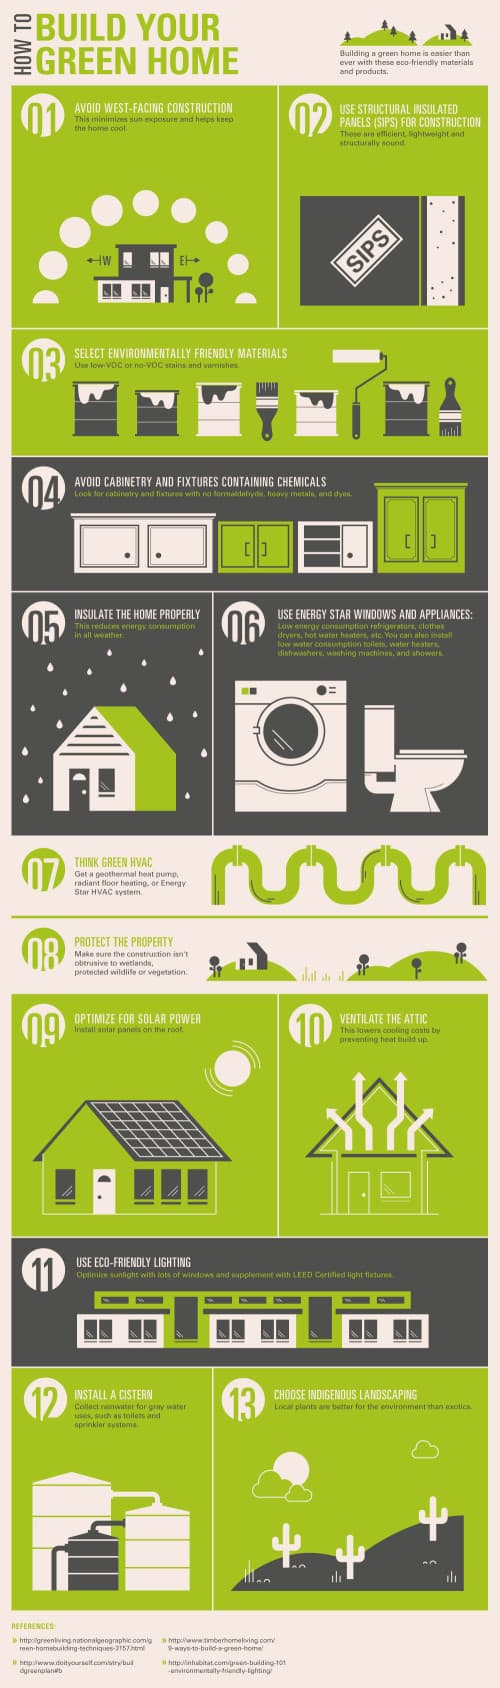 13 tips for building a green home infographic green living for Build a green home